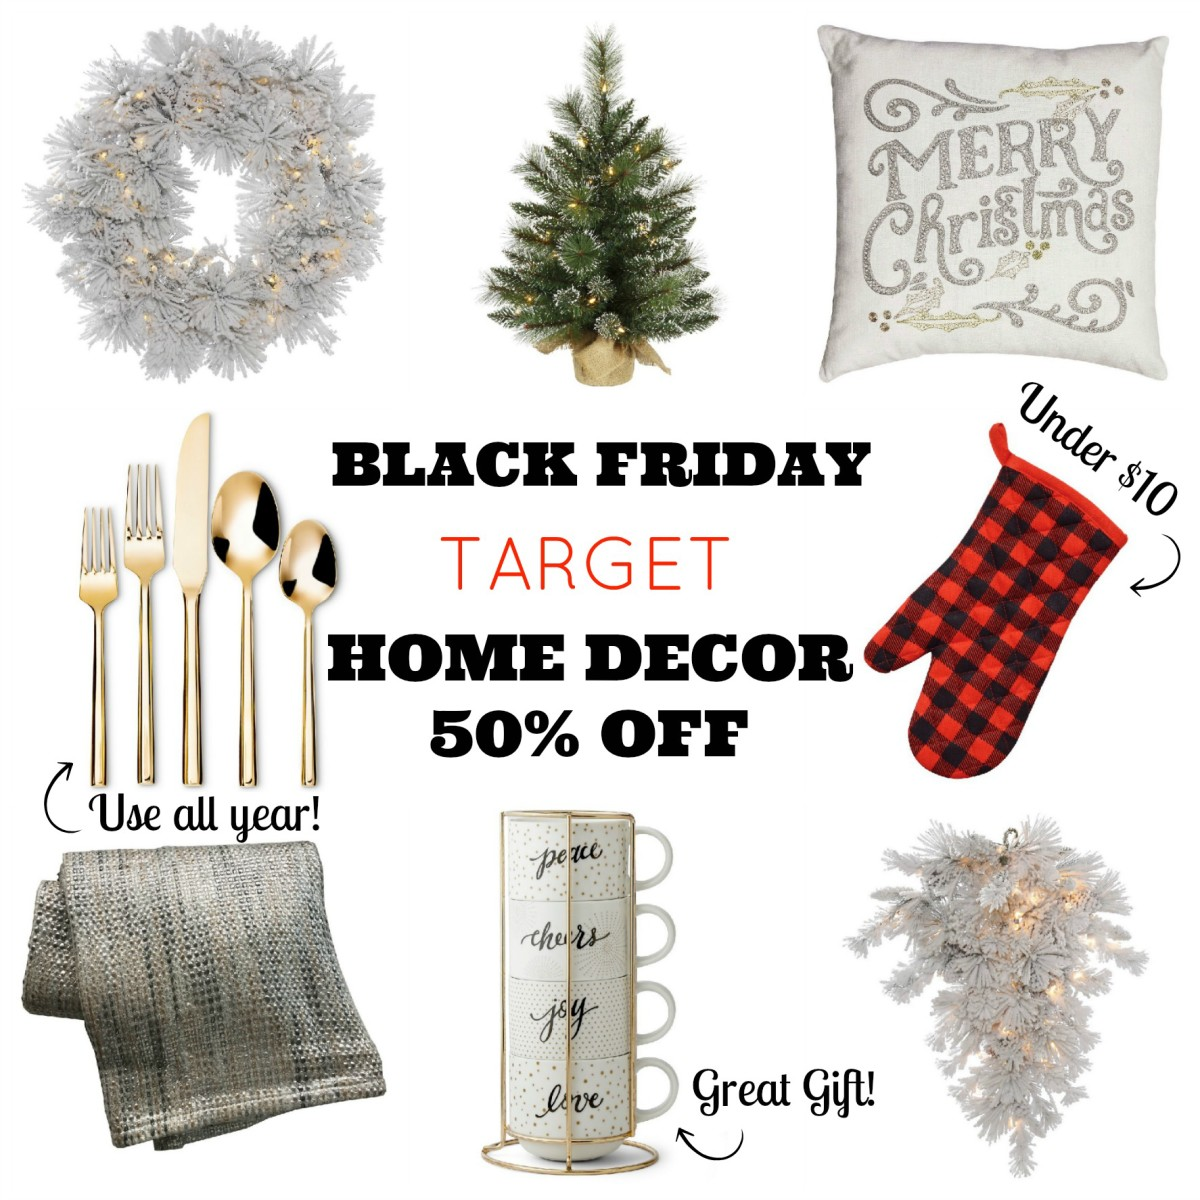 black friday deals target home decor - Black Friday Christmas Decoration Deals